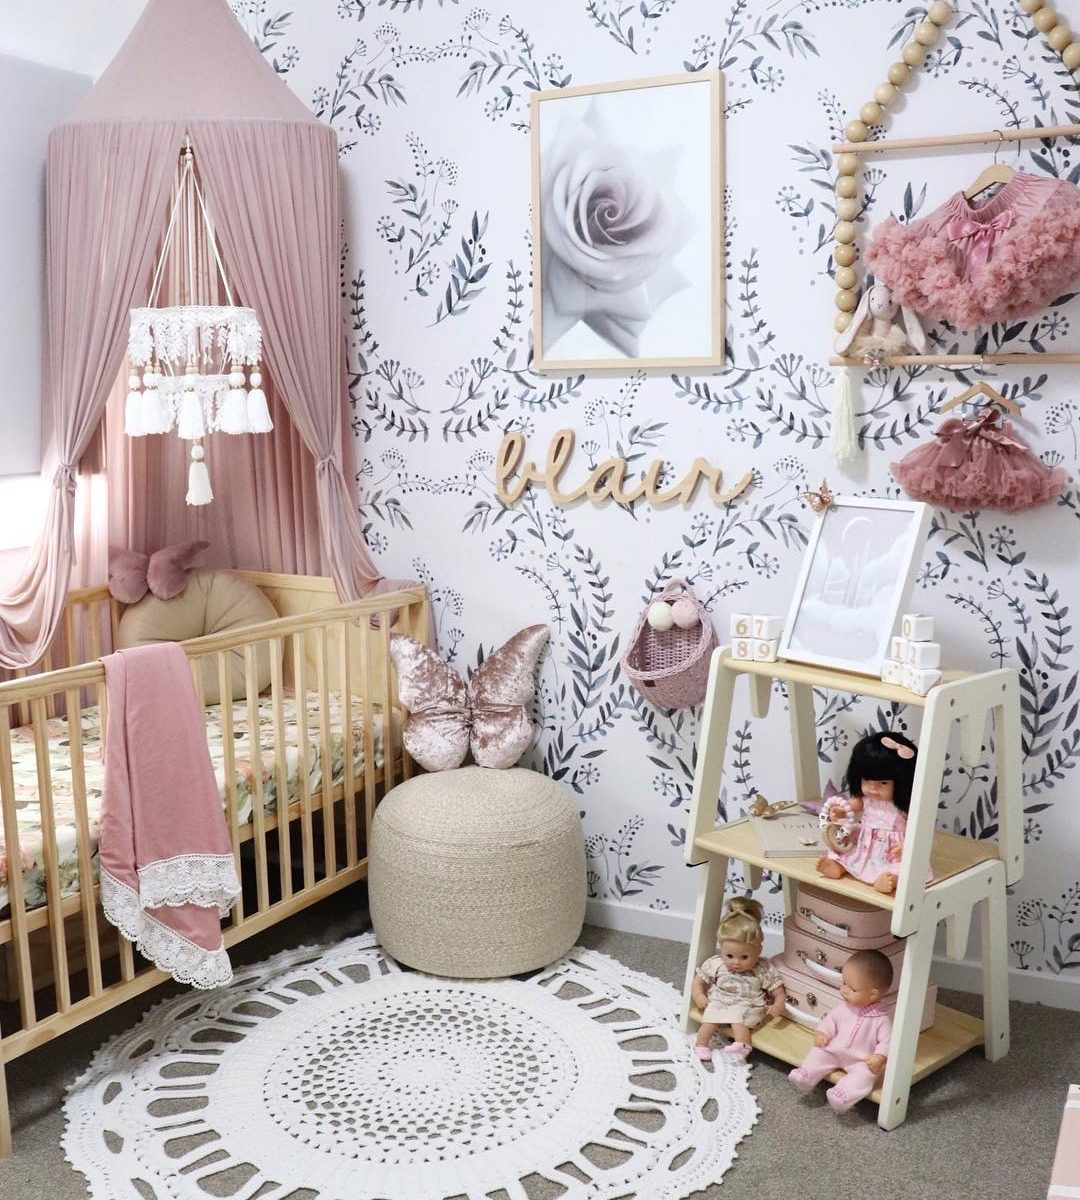 Room Inspiration – Cozy Nursery